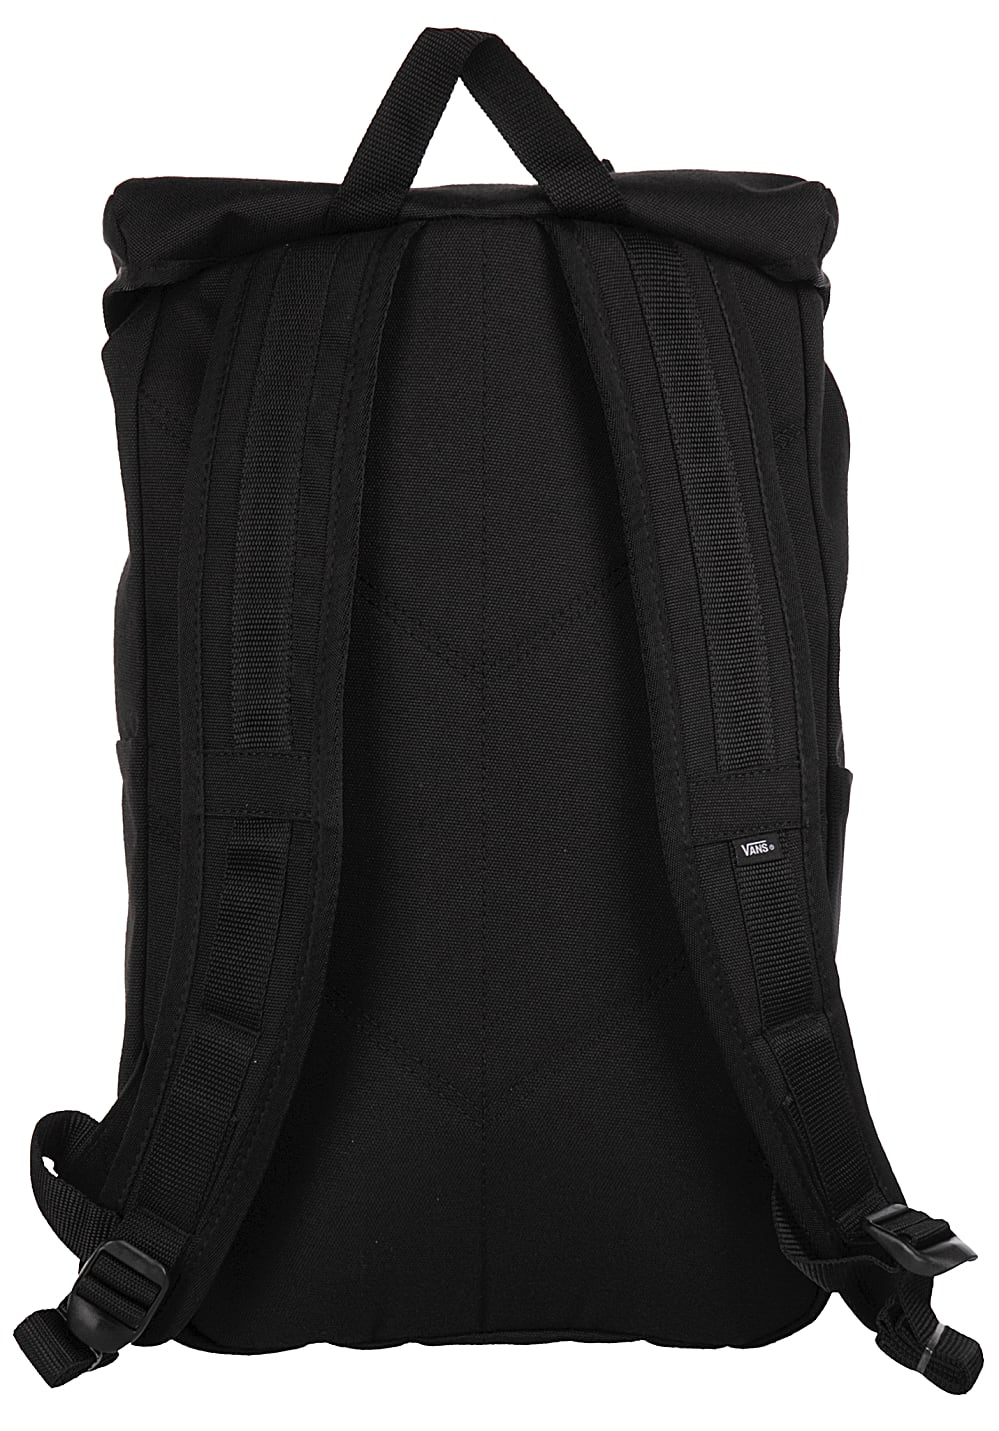 059f5eb546c10 Vans Scurry - Backpack - Black - Planet Sports